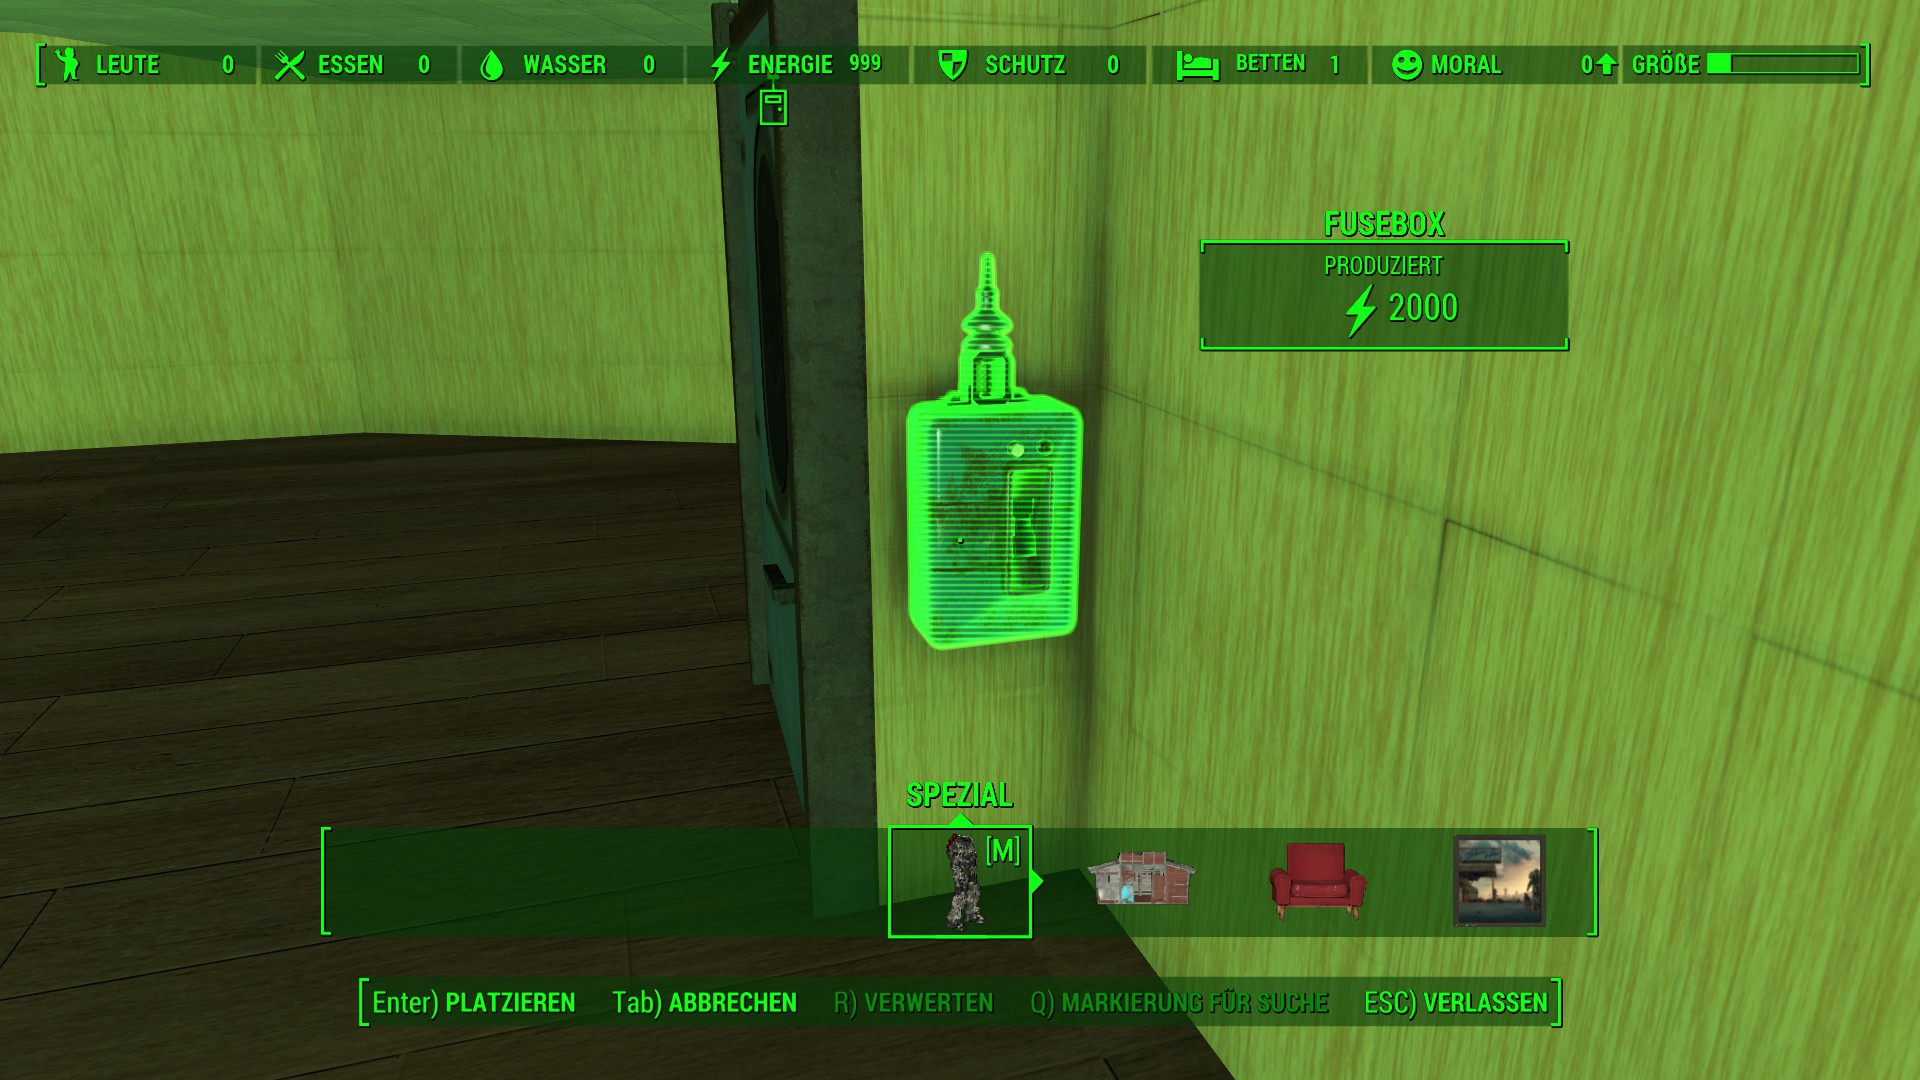 20523 8 1481318729 diamond city home plate komplett renoviert at fallout 4 nexus fallout 4 fuse box at reclaimingppi.co